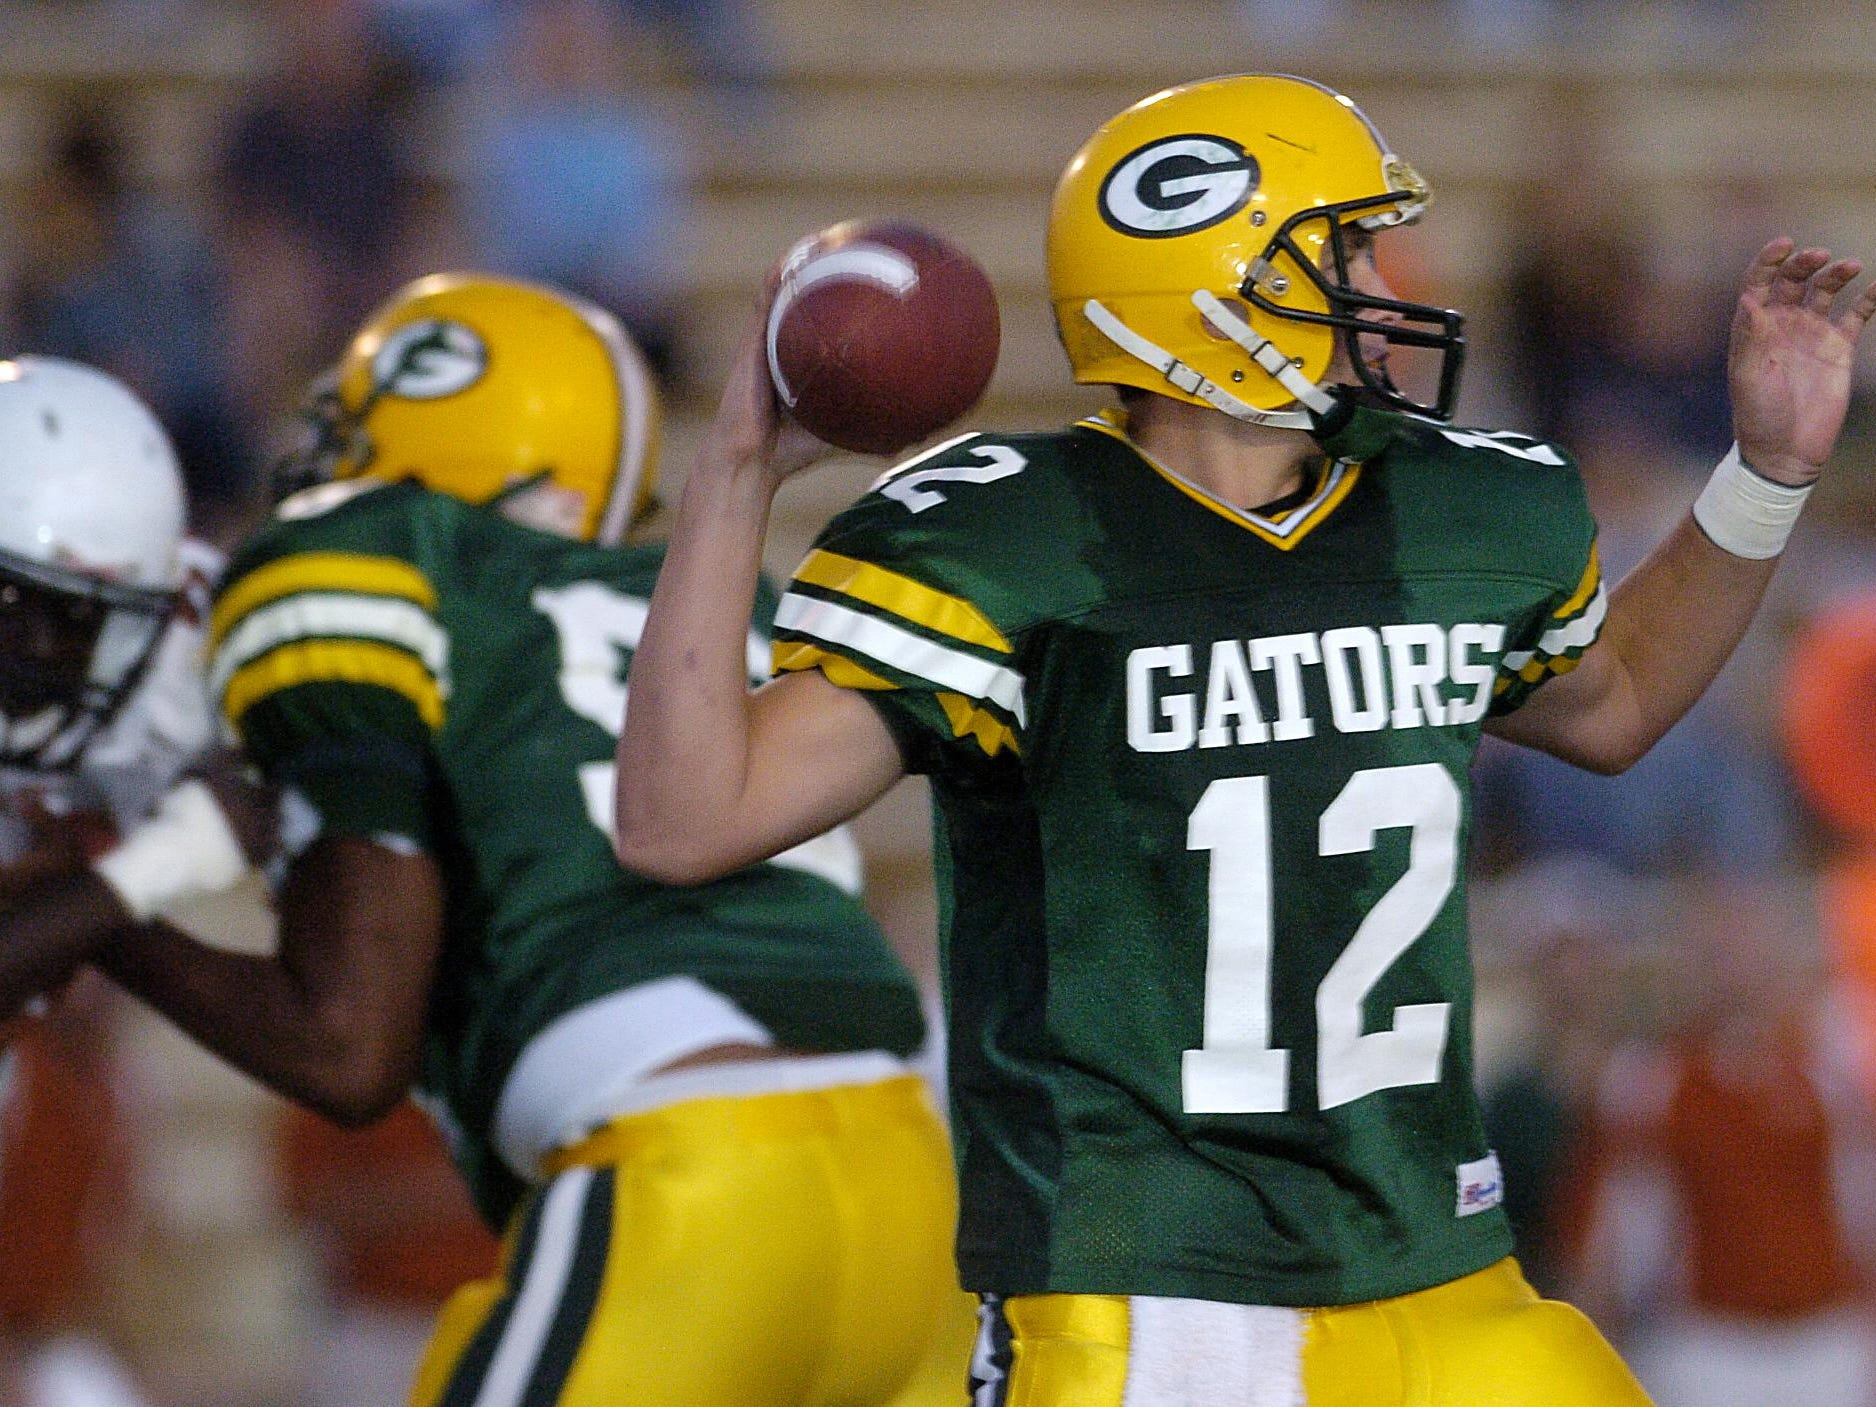 Captain Shreve's Marc Kimball prepares to throw the ball during Thursday's game against Northwood at Lee Hedges Stadium in Shreveport.Val Horvath/The Times 092806